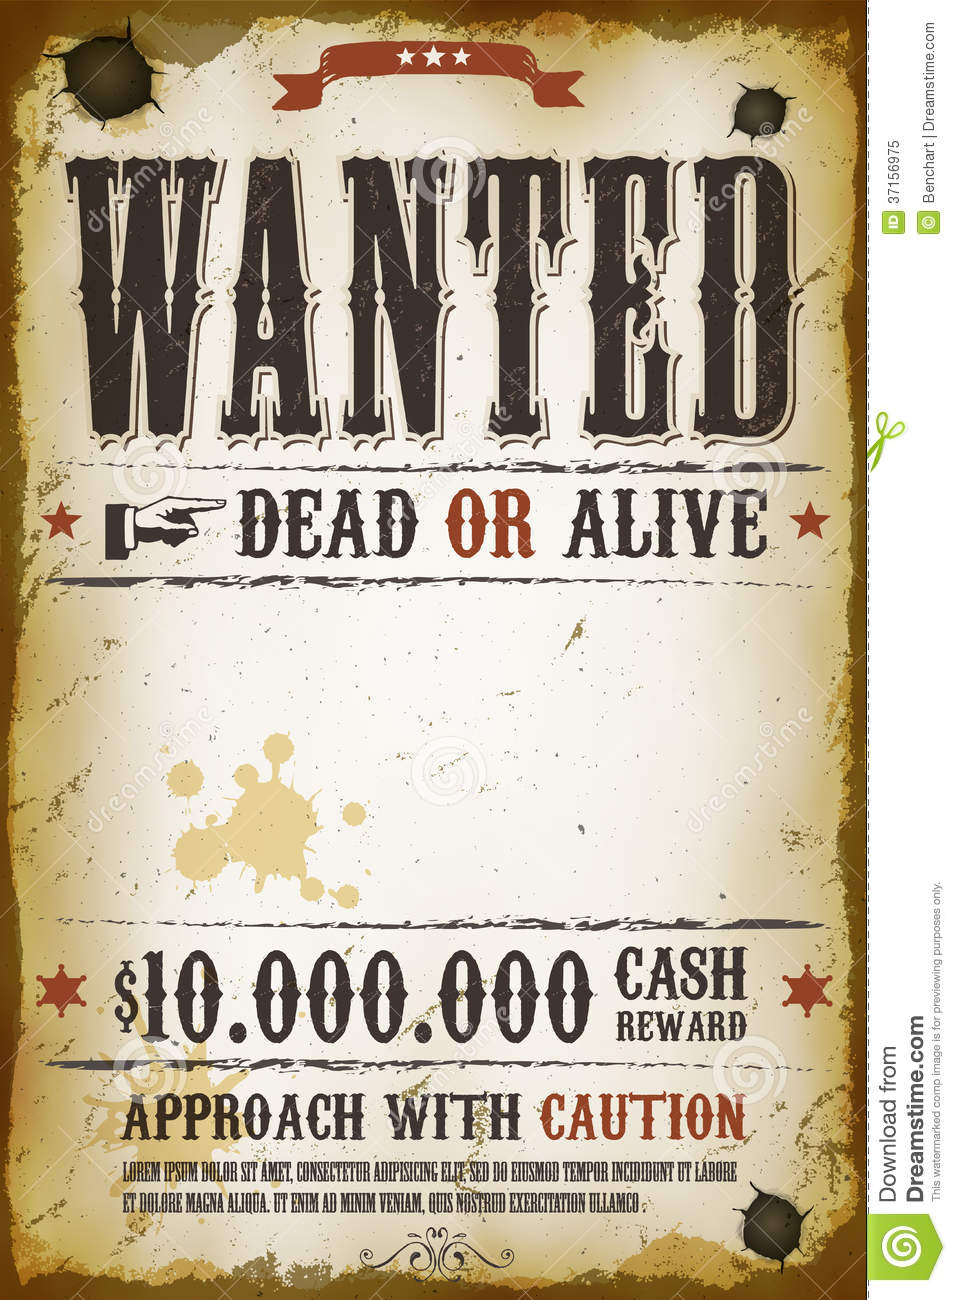 Wanted Vintage Western Poster Illustration 37156975 Megapixl – Free Printable Wanted Poster